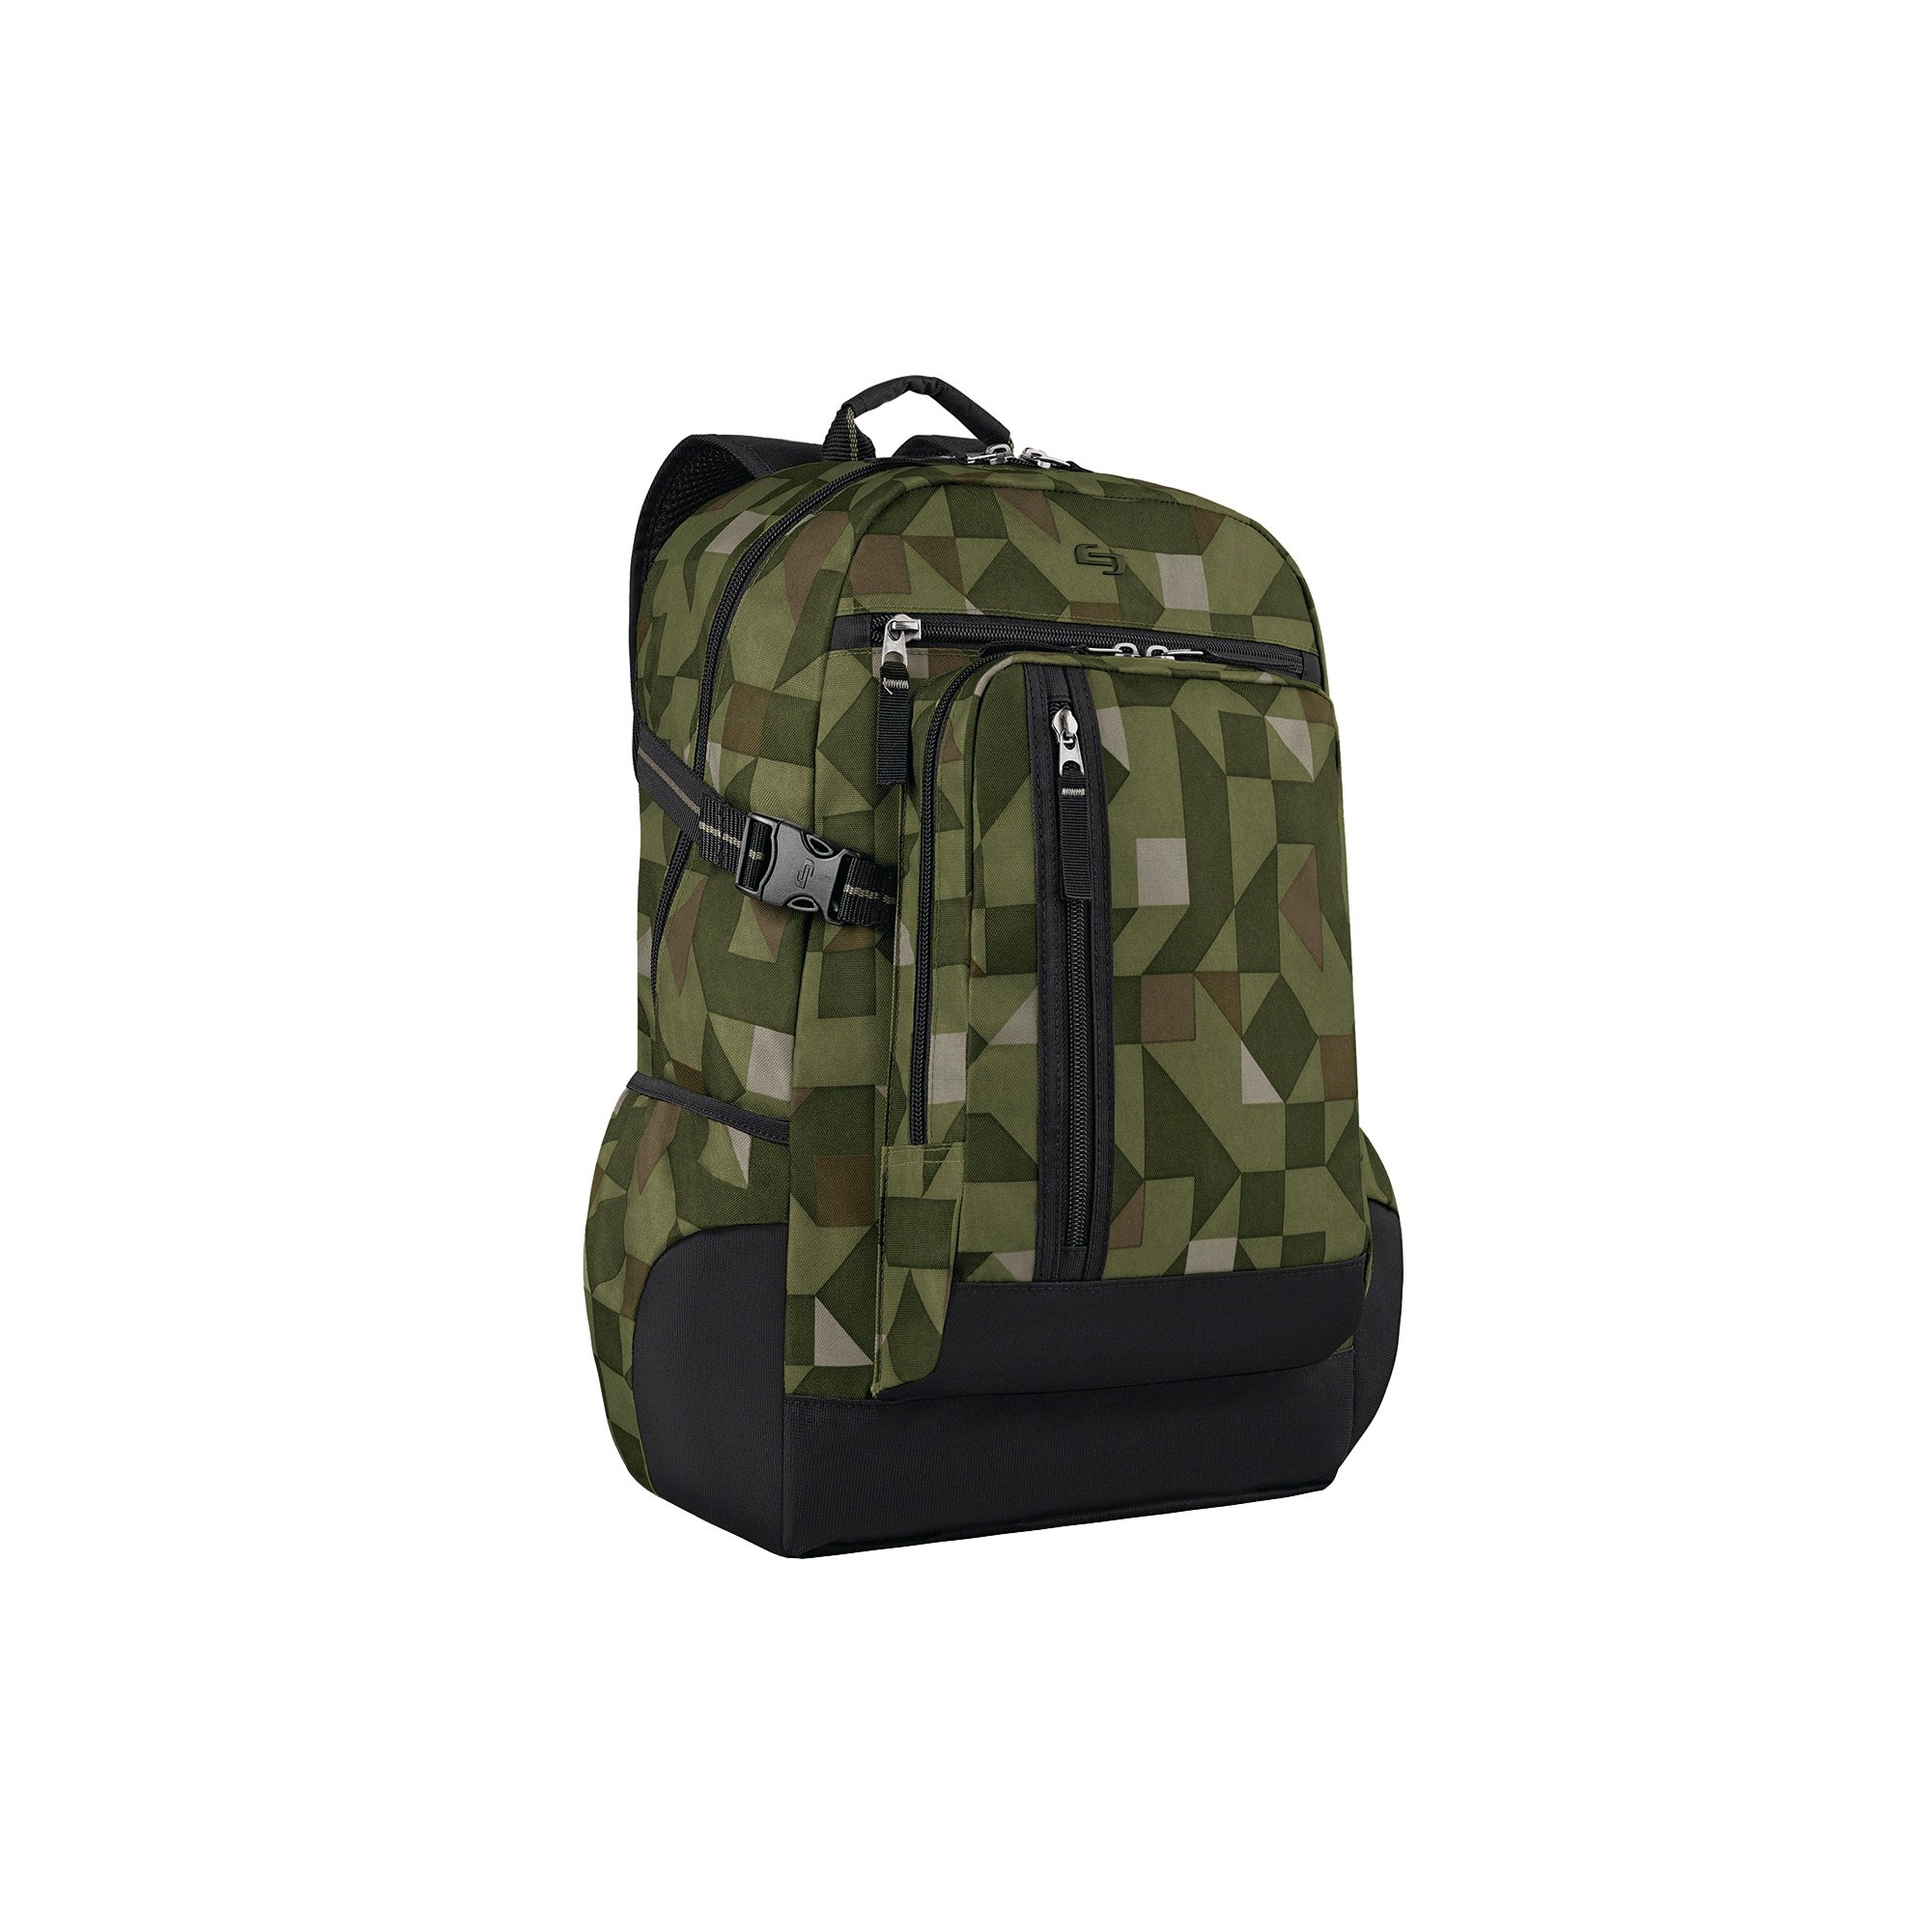 Solo 18 Warp Backpack - Gray, Red/Grey